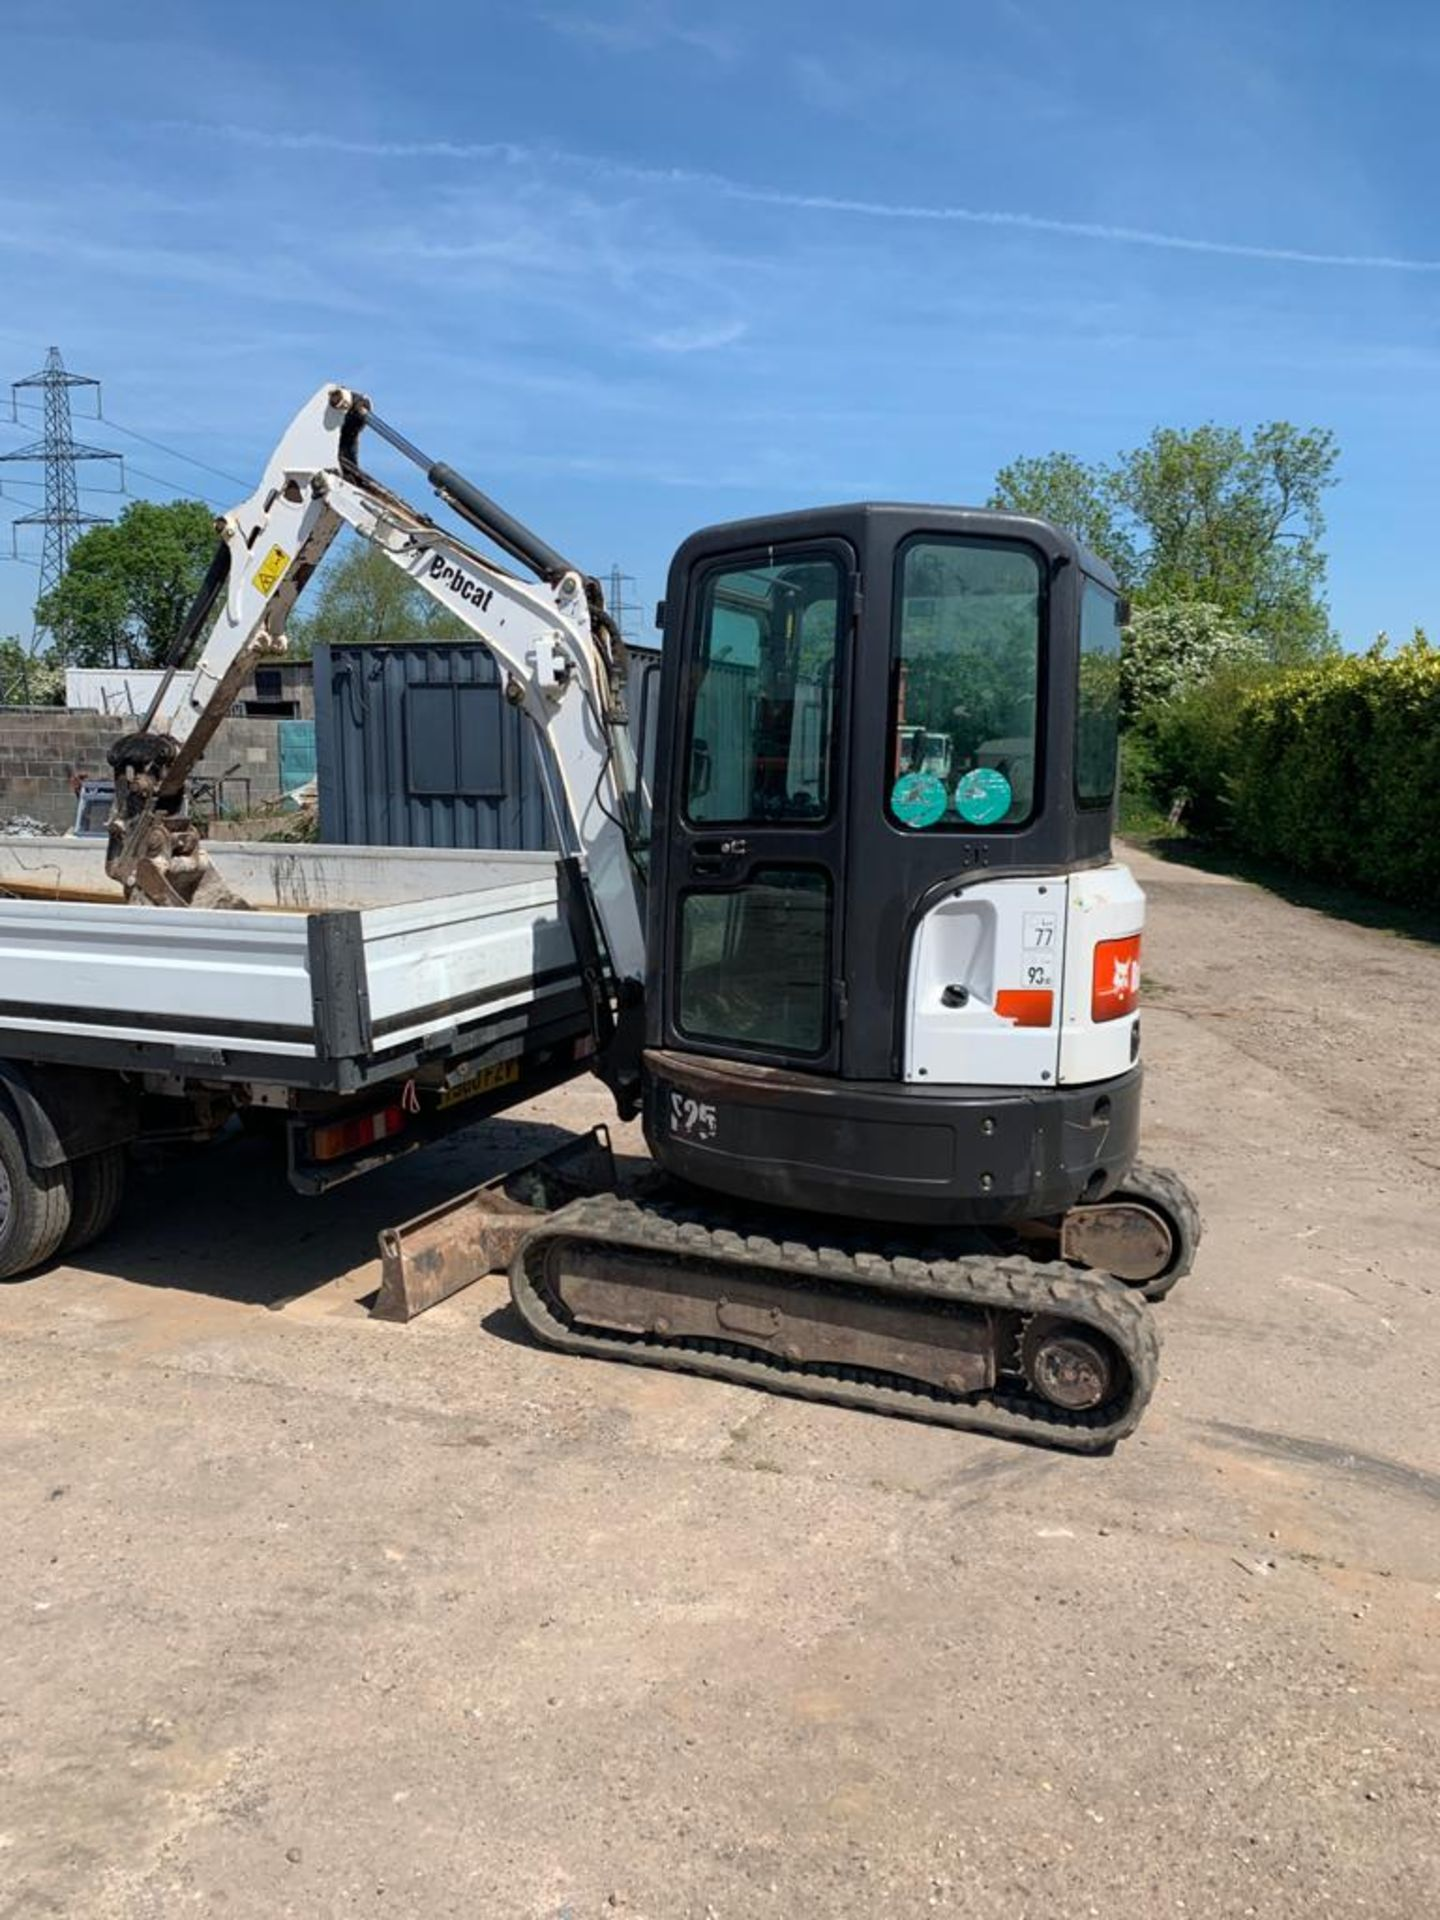 2014 BOBCAT E25 RUBBER TRACKED COMPACT EXCAVATOR / DIGGER, 15.3 KW, MASS 2516 KG *PLUS VAT* - Image 3 of 19